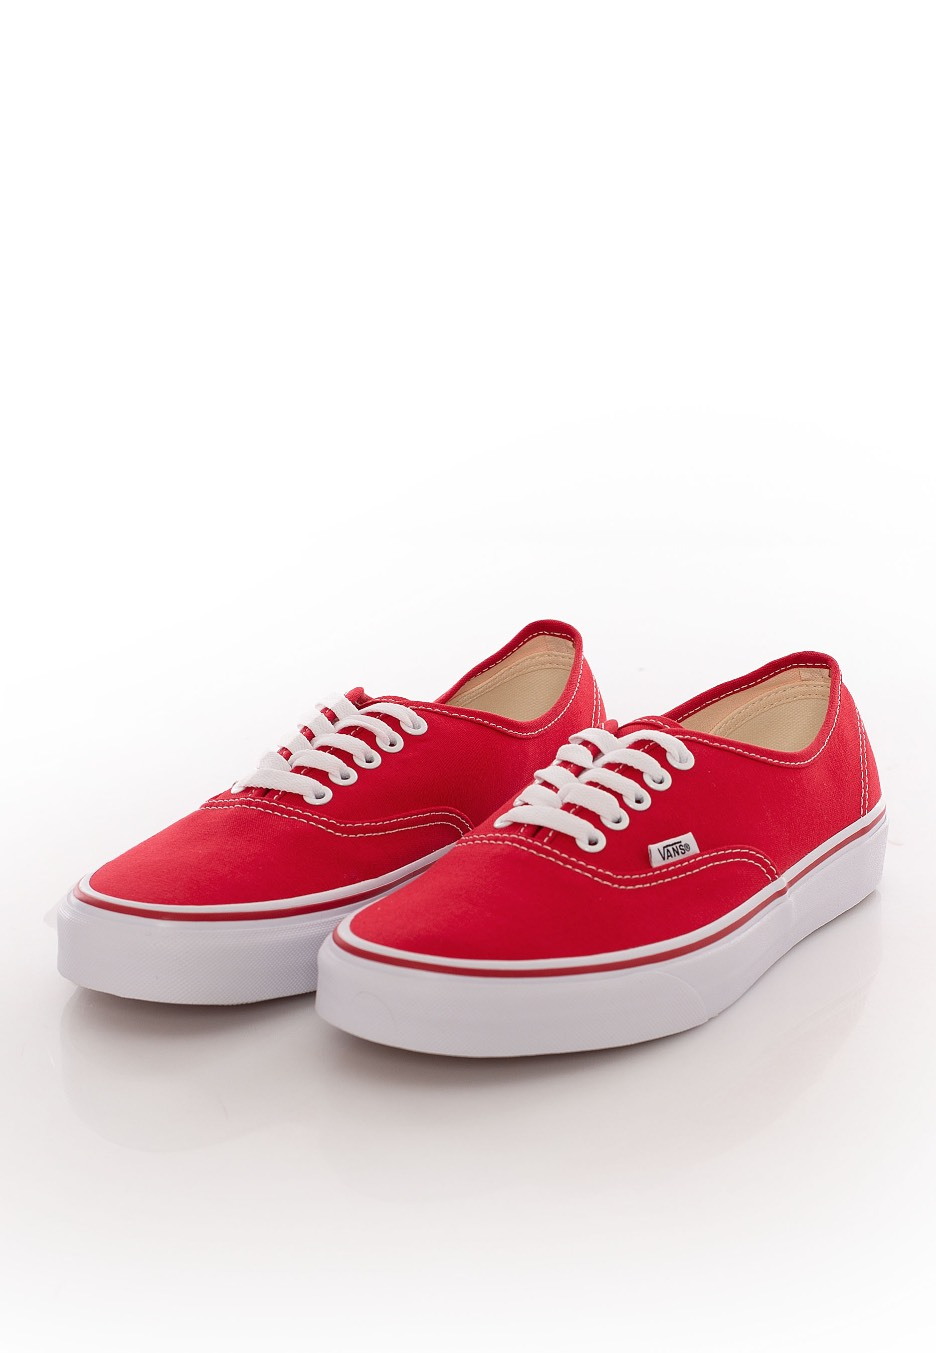 red and white vans